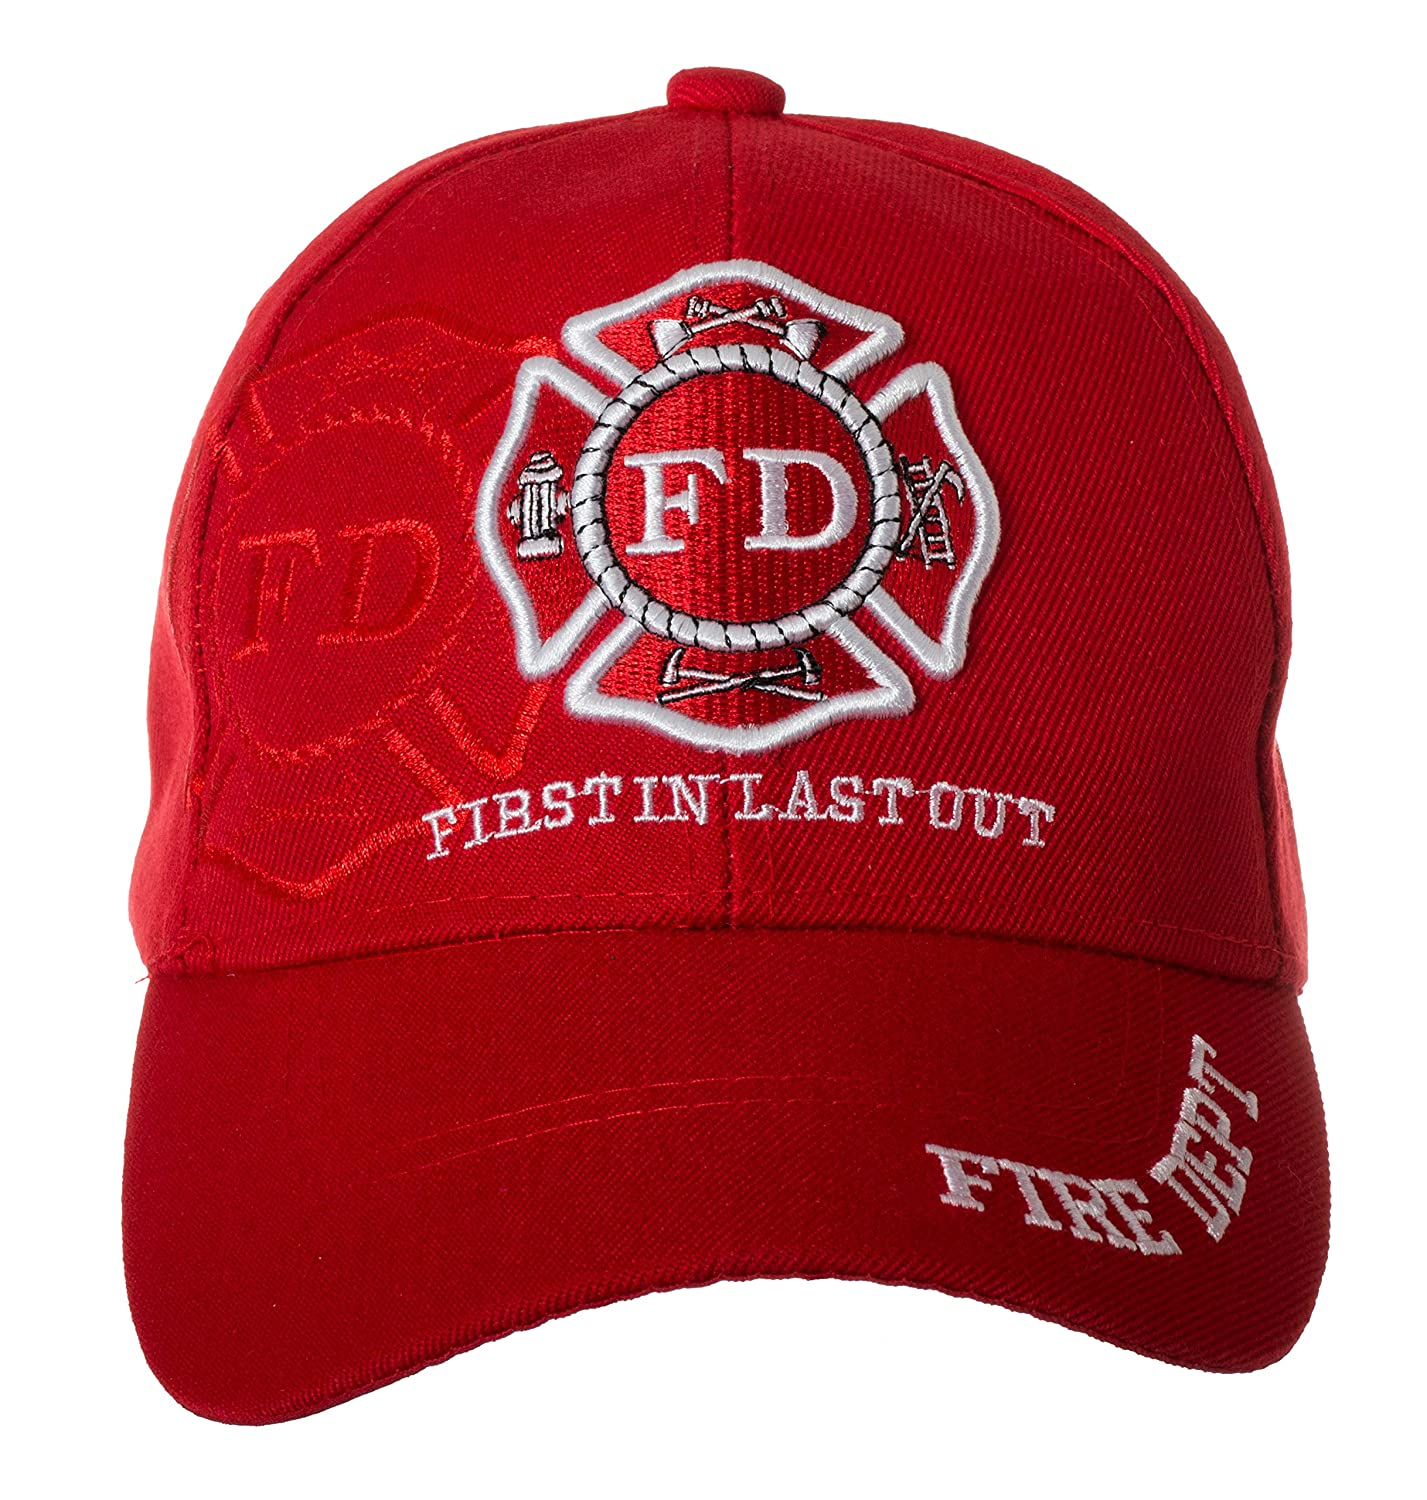 Artisan Owl Fire Department First In Last Out Cap - Firefighter Gift -100% Cotton Embroidered Hat